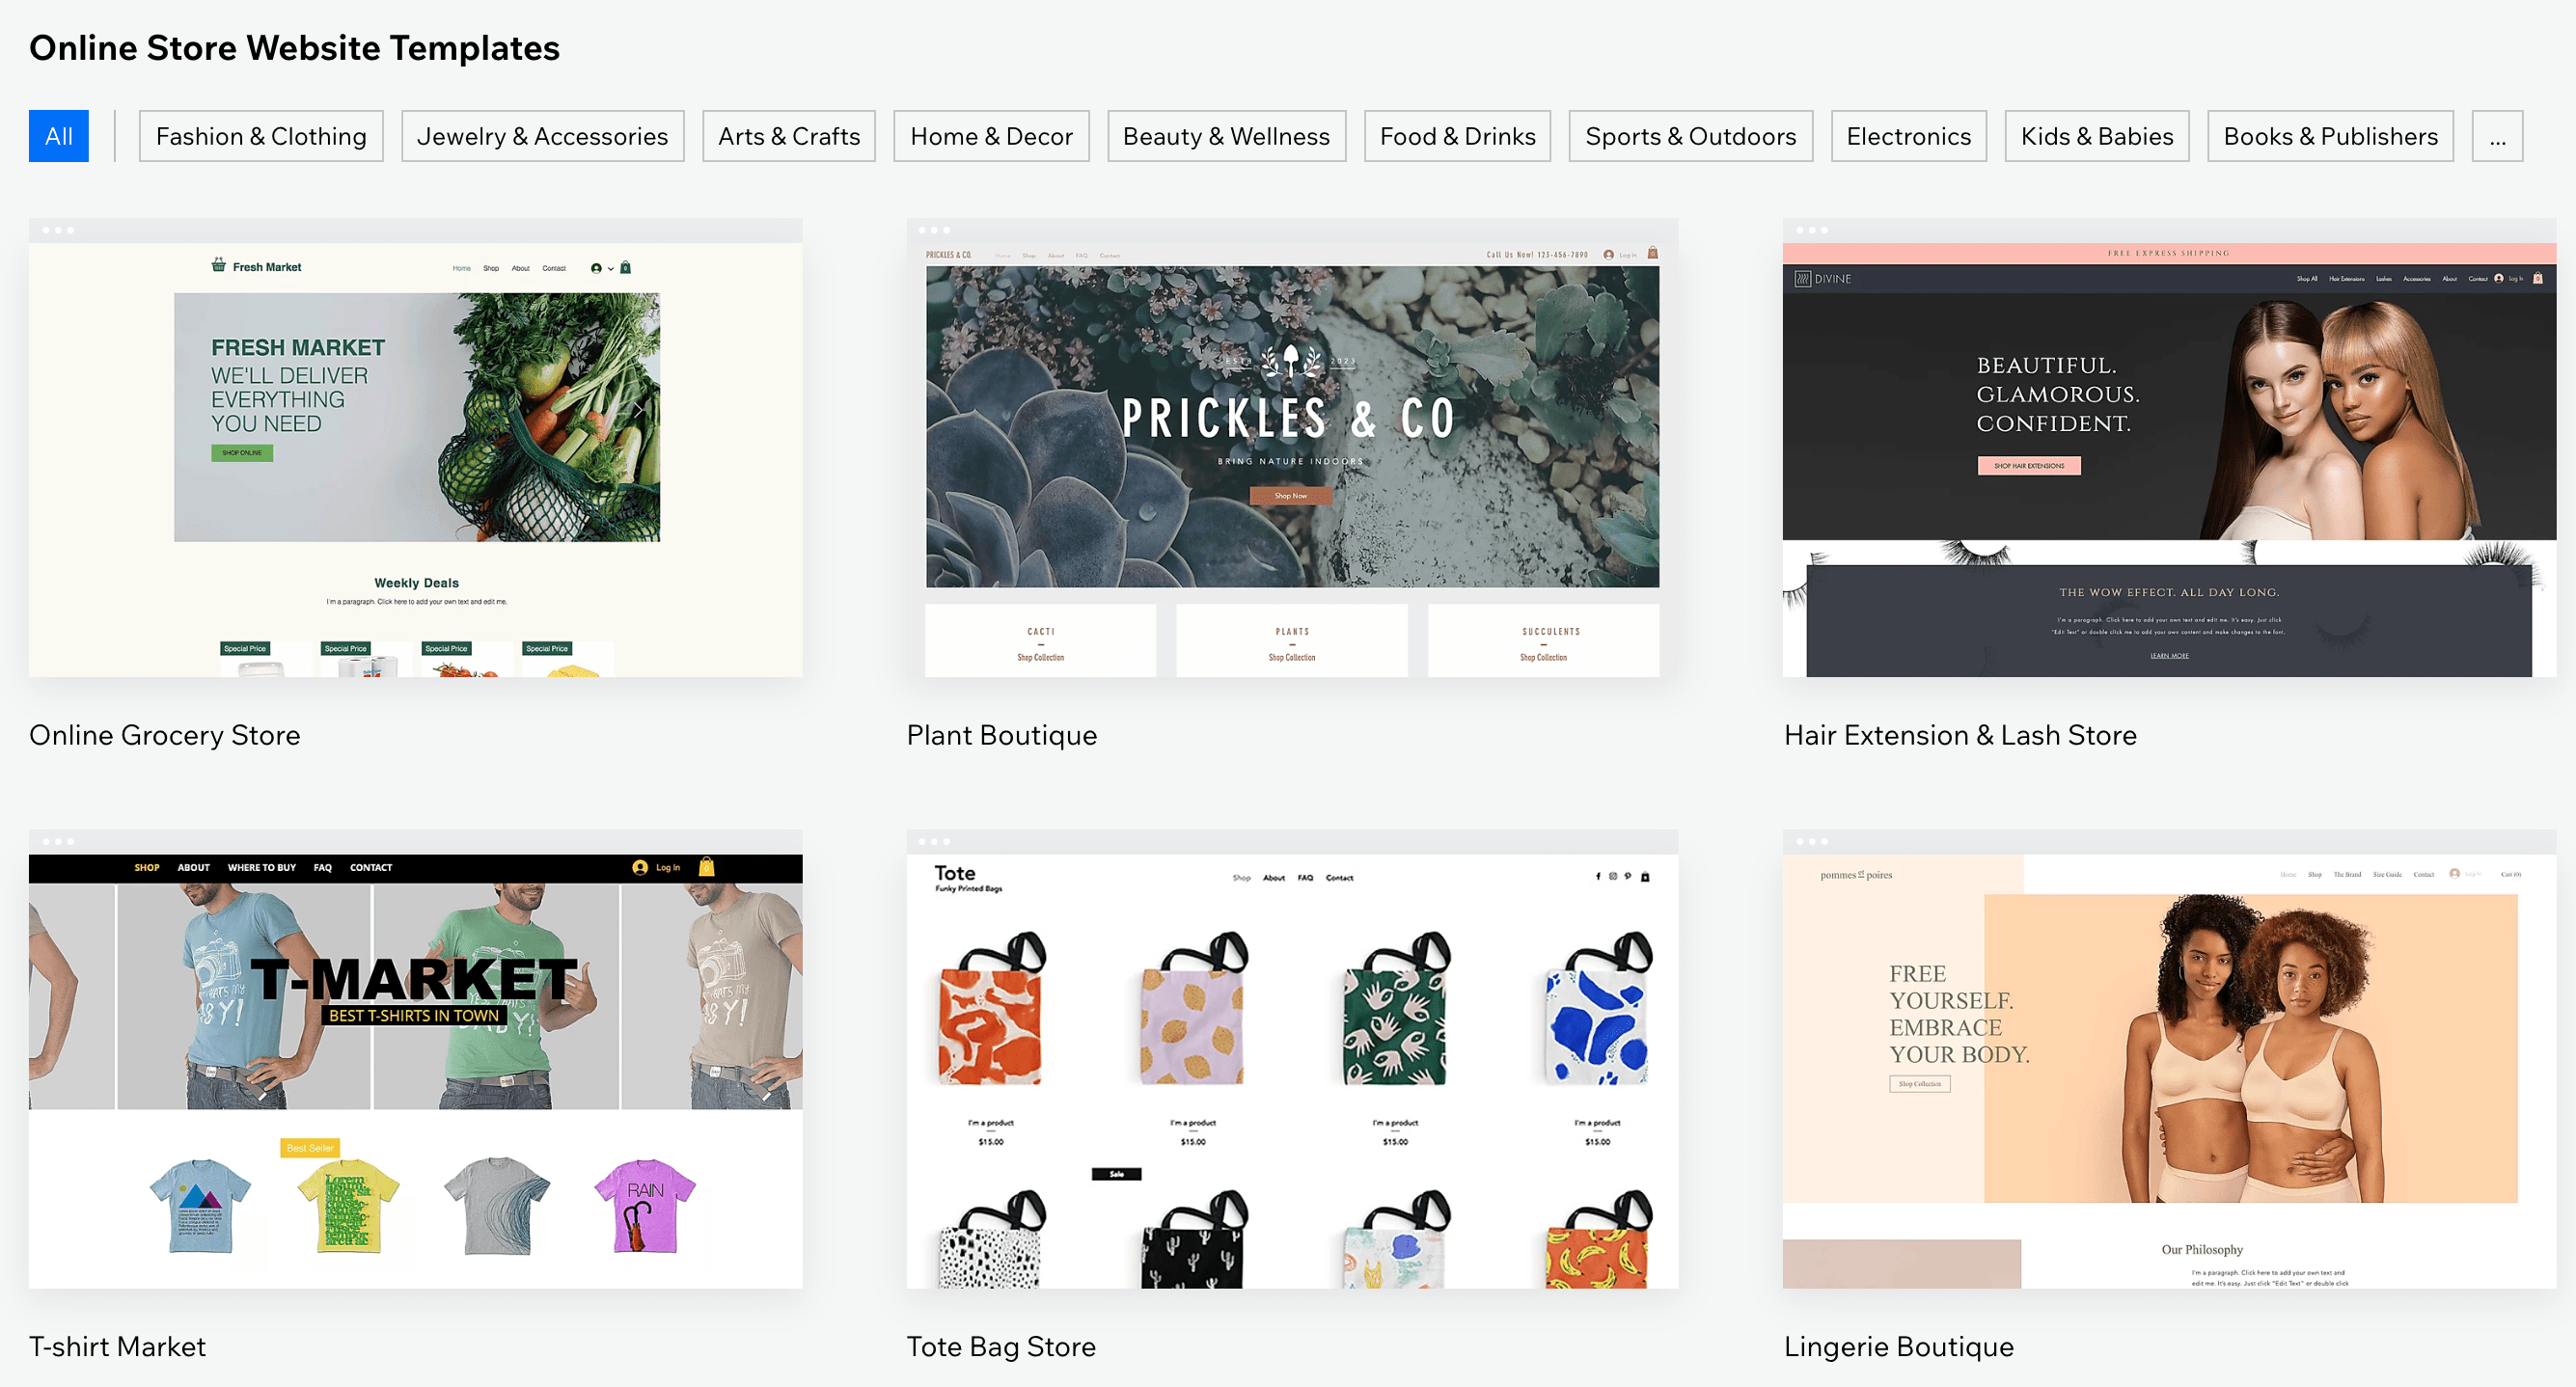 Wix Online Store Website Templates